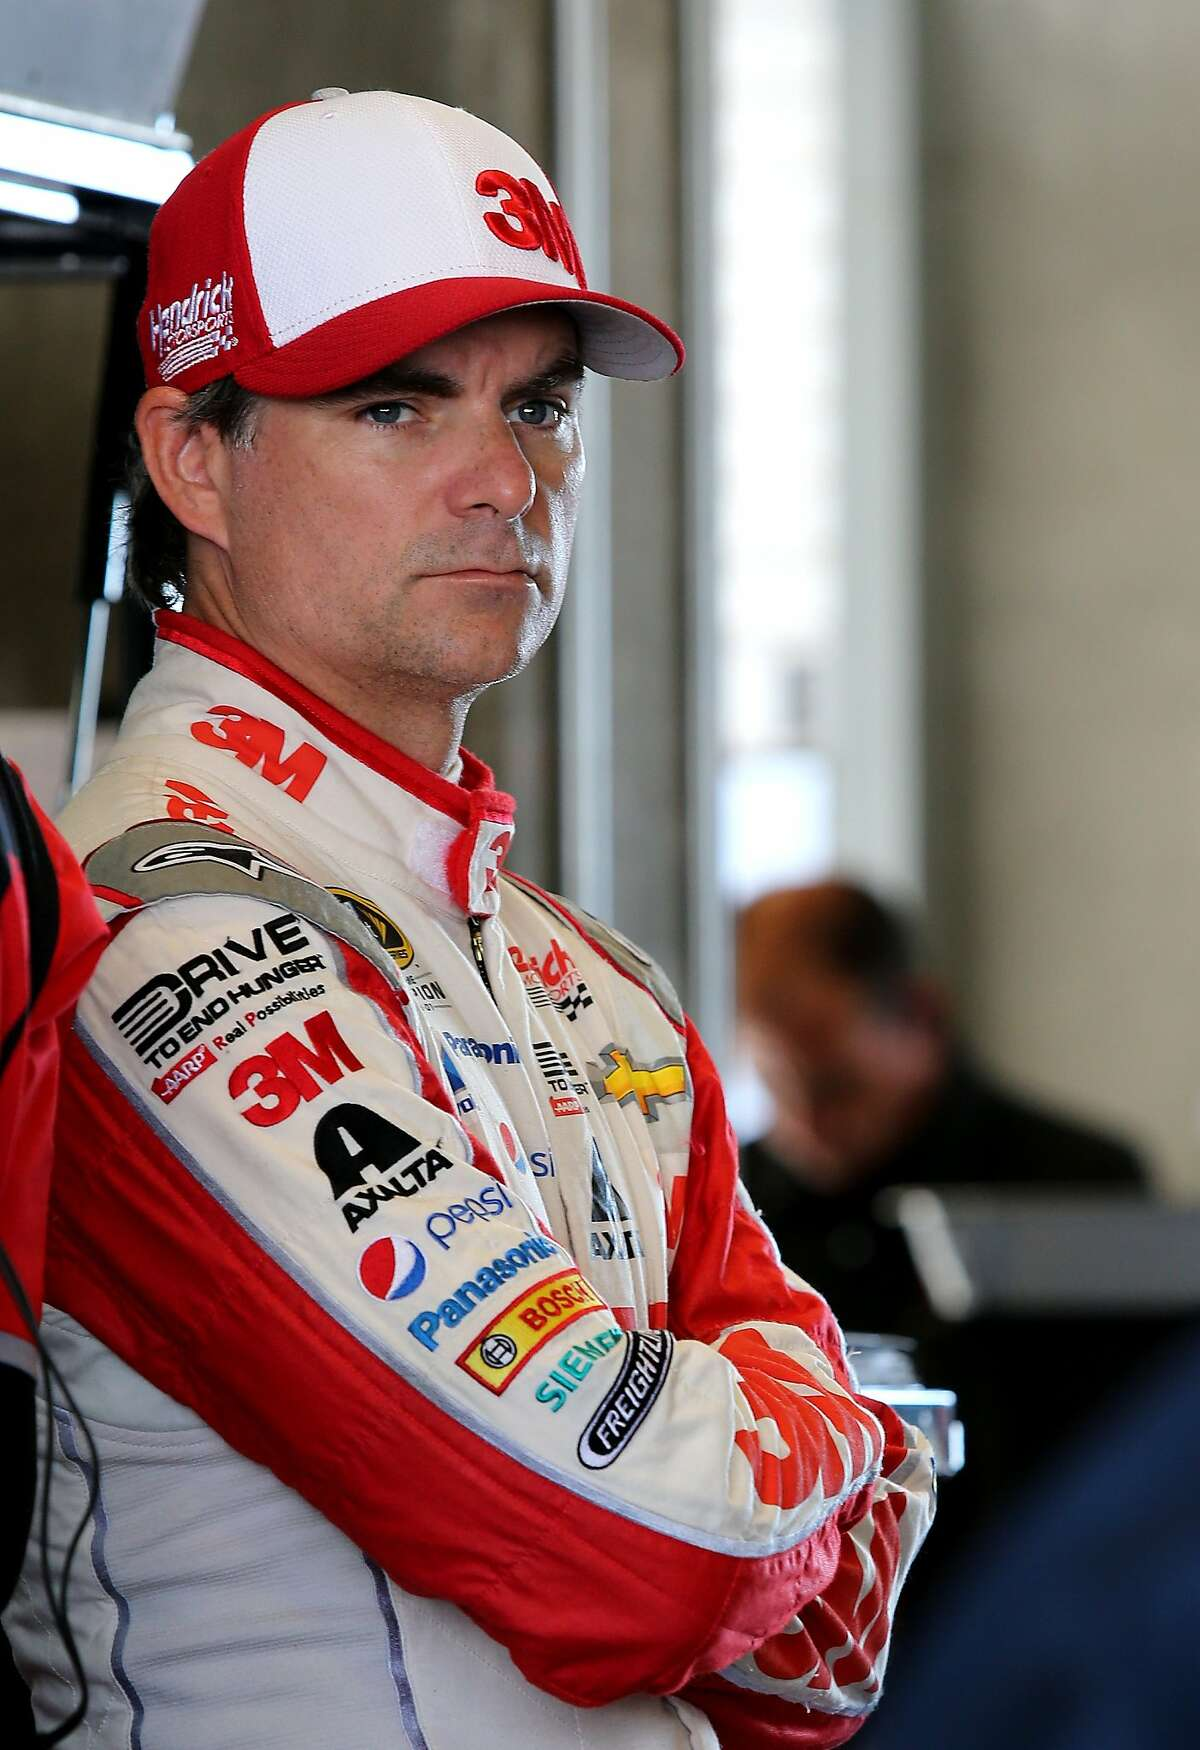 INDIANAPOLIS, IN - JULY 24: Jeff Gordon, driver of the #24 3M Chevrolet, stands in the garage area during practice for the NASCAR Sprint Cup Series Crown Royal Presents the Jeff Kyle 400 at the Brickyard at Indianapolis Motorspeedway on July 24, 2015 in Indianapolis, Indiana. (Photo by Jerry Markland/Getty Images)